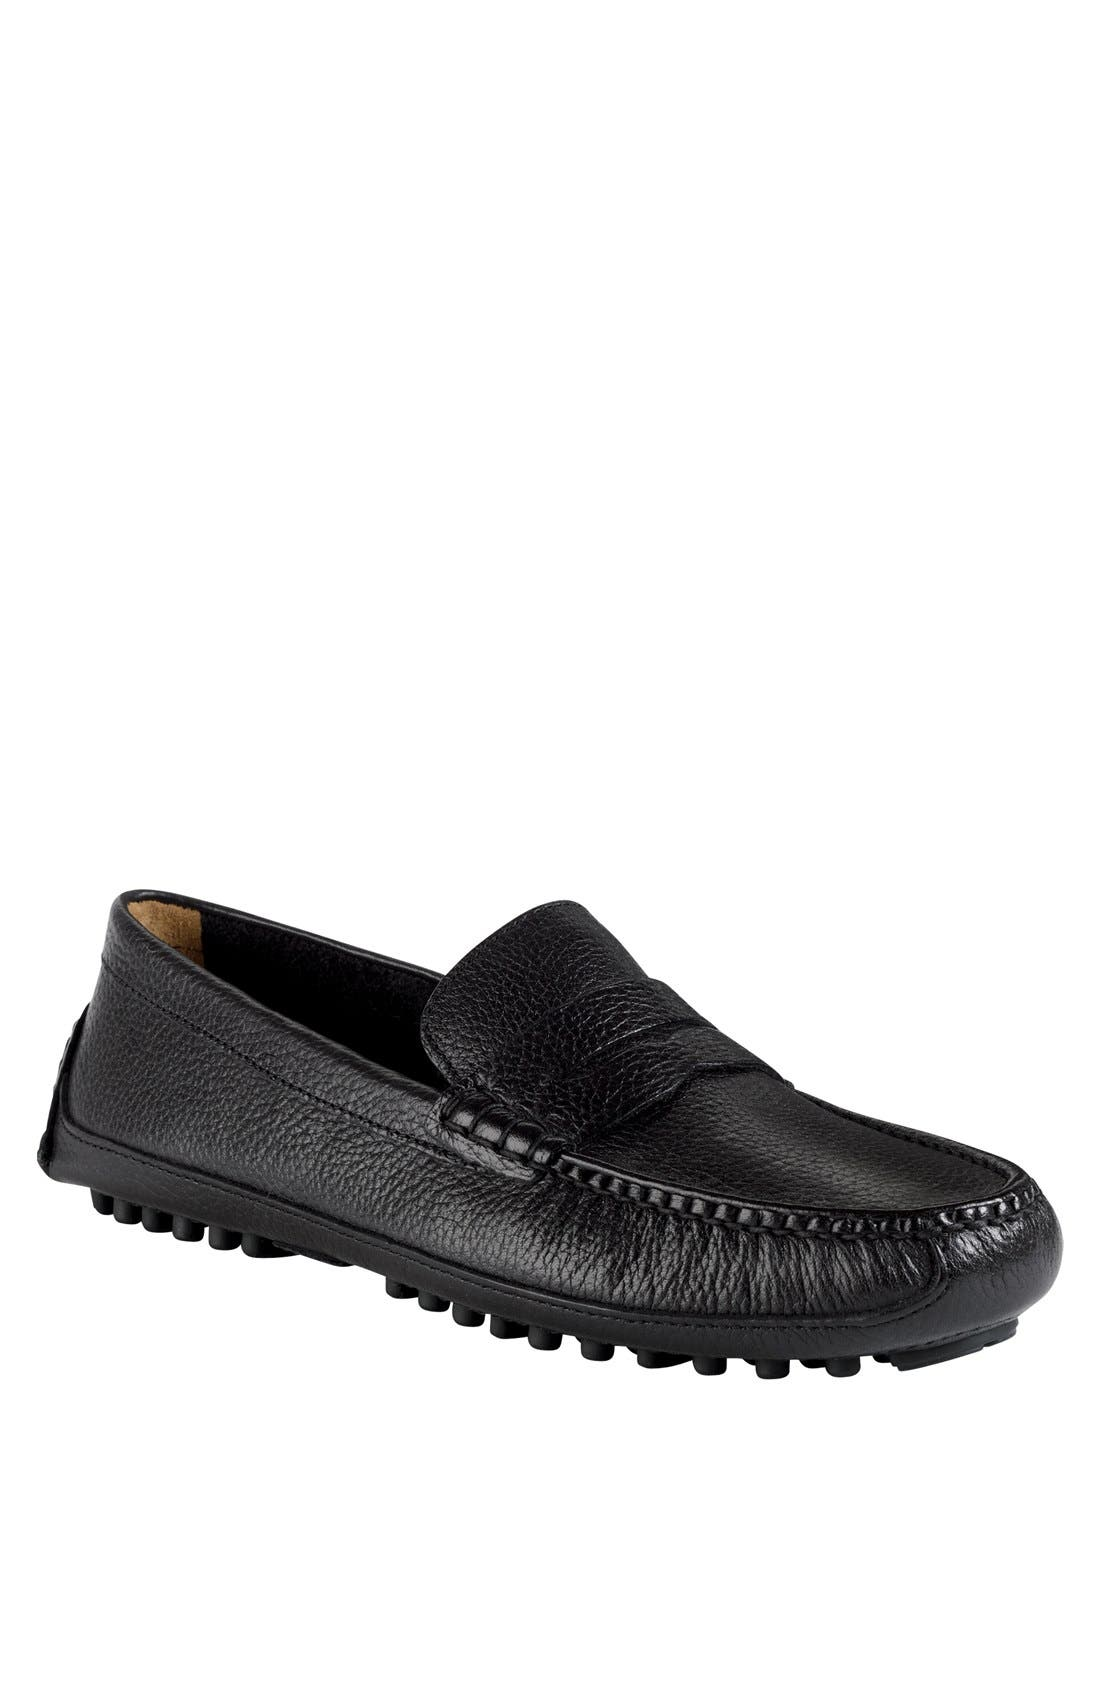 Main Image - Cole Haan 'Grant Canoe' Penny Loafer   (Men)